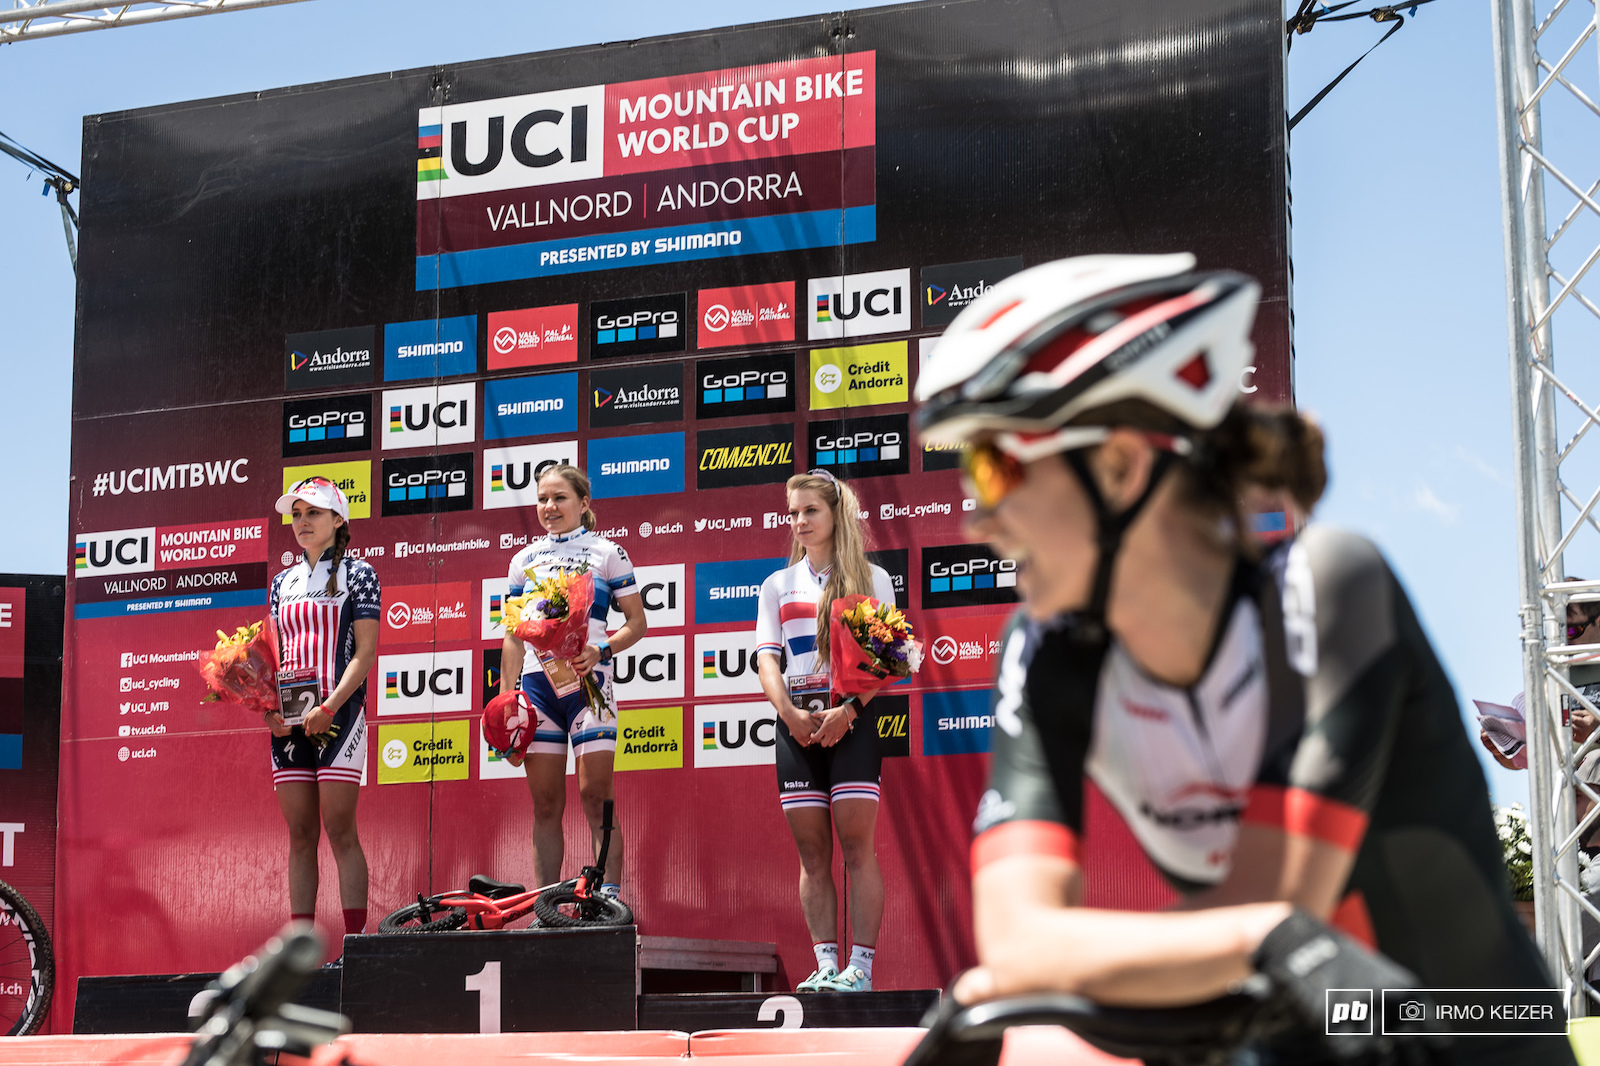 A very very tight schedule in Andorra saw riders finishing their race having to wait for the podium prior to riding out of the finish area.